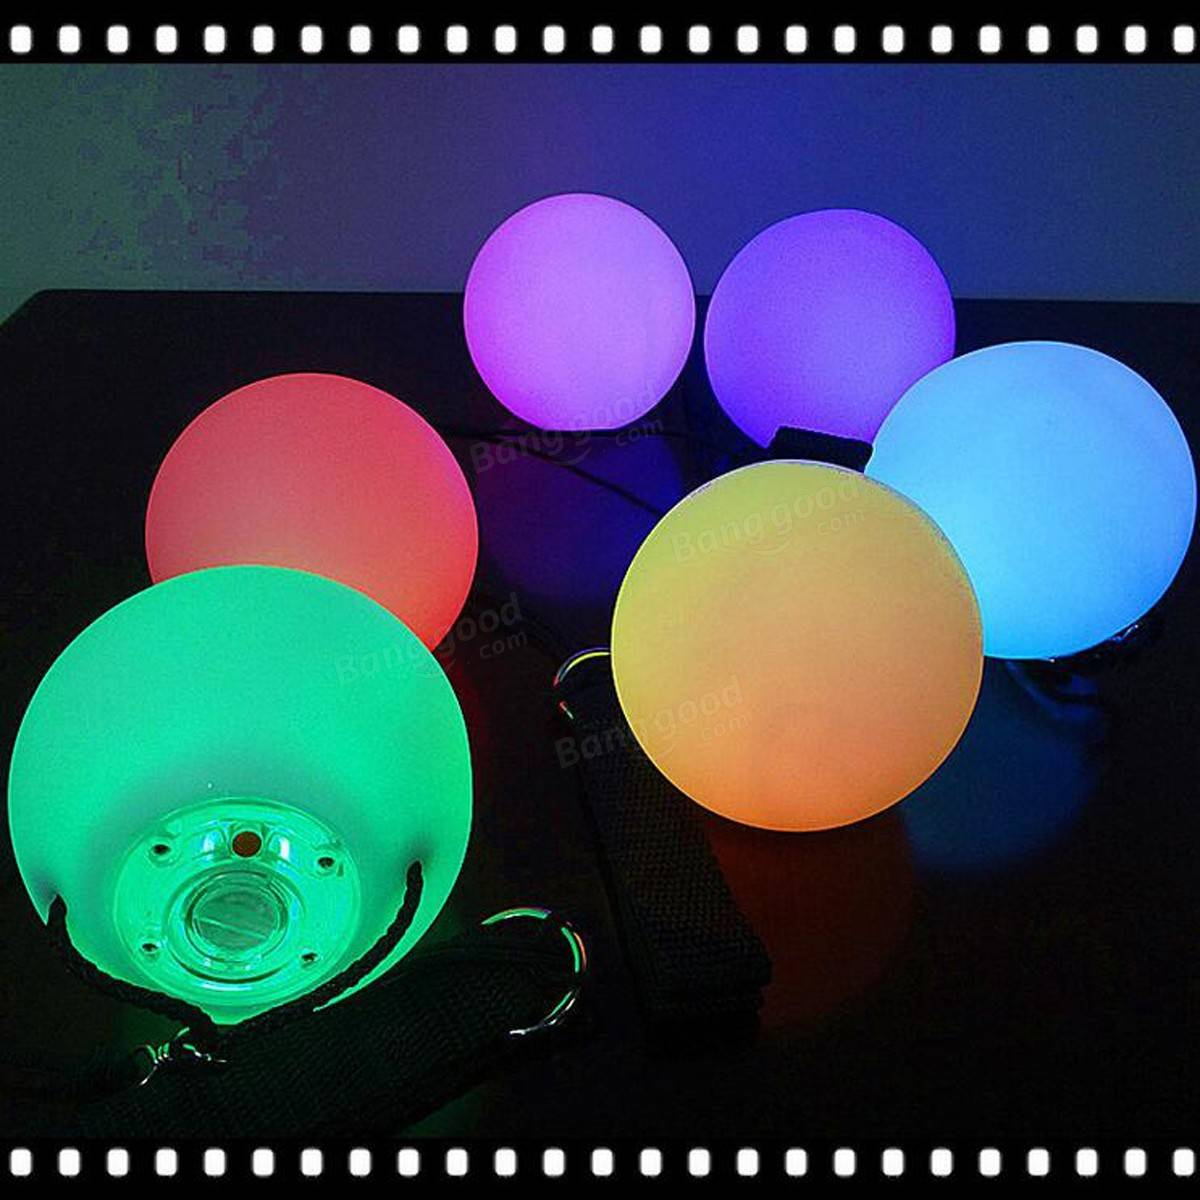 5PCS Pro LED Multicolored Glow POI Thrown Balls Light Up For Belly Dance Hand Props  sc 1 st  Banggood & 5PCS Pro LED Multicolored Glow POI Thrown Balls Light Up For Belly ... azcodes.com